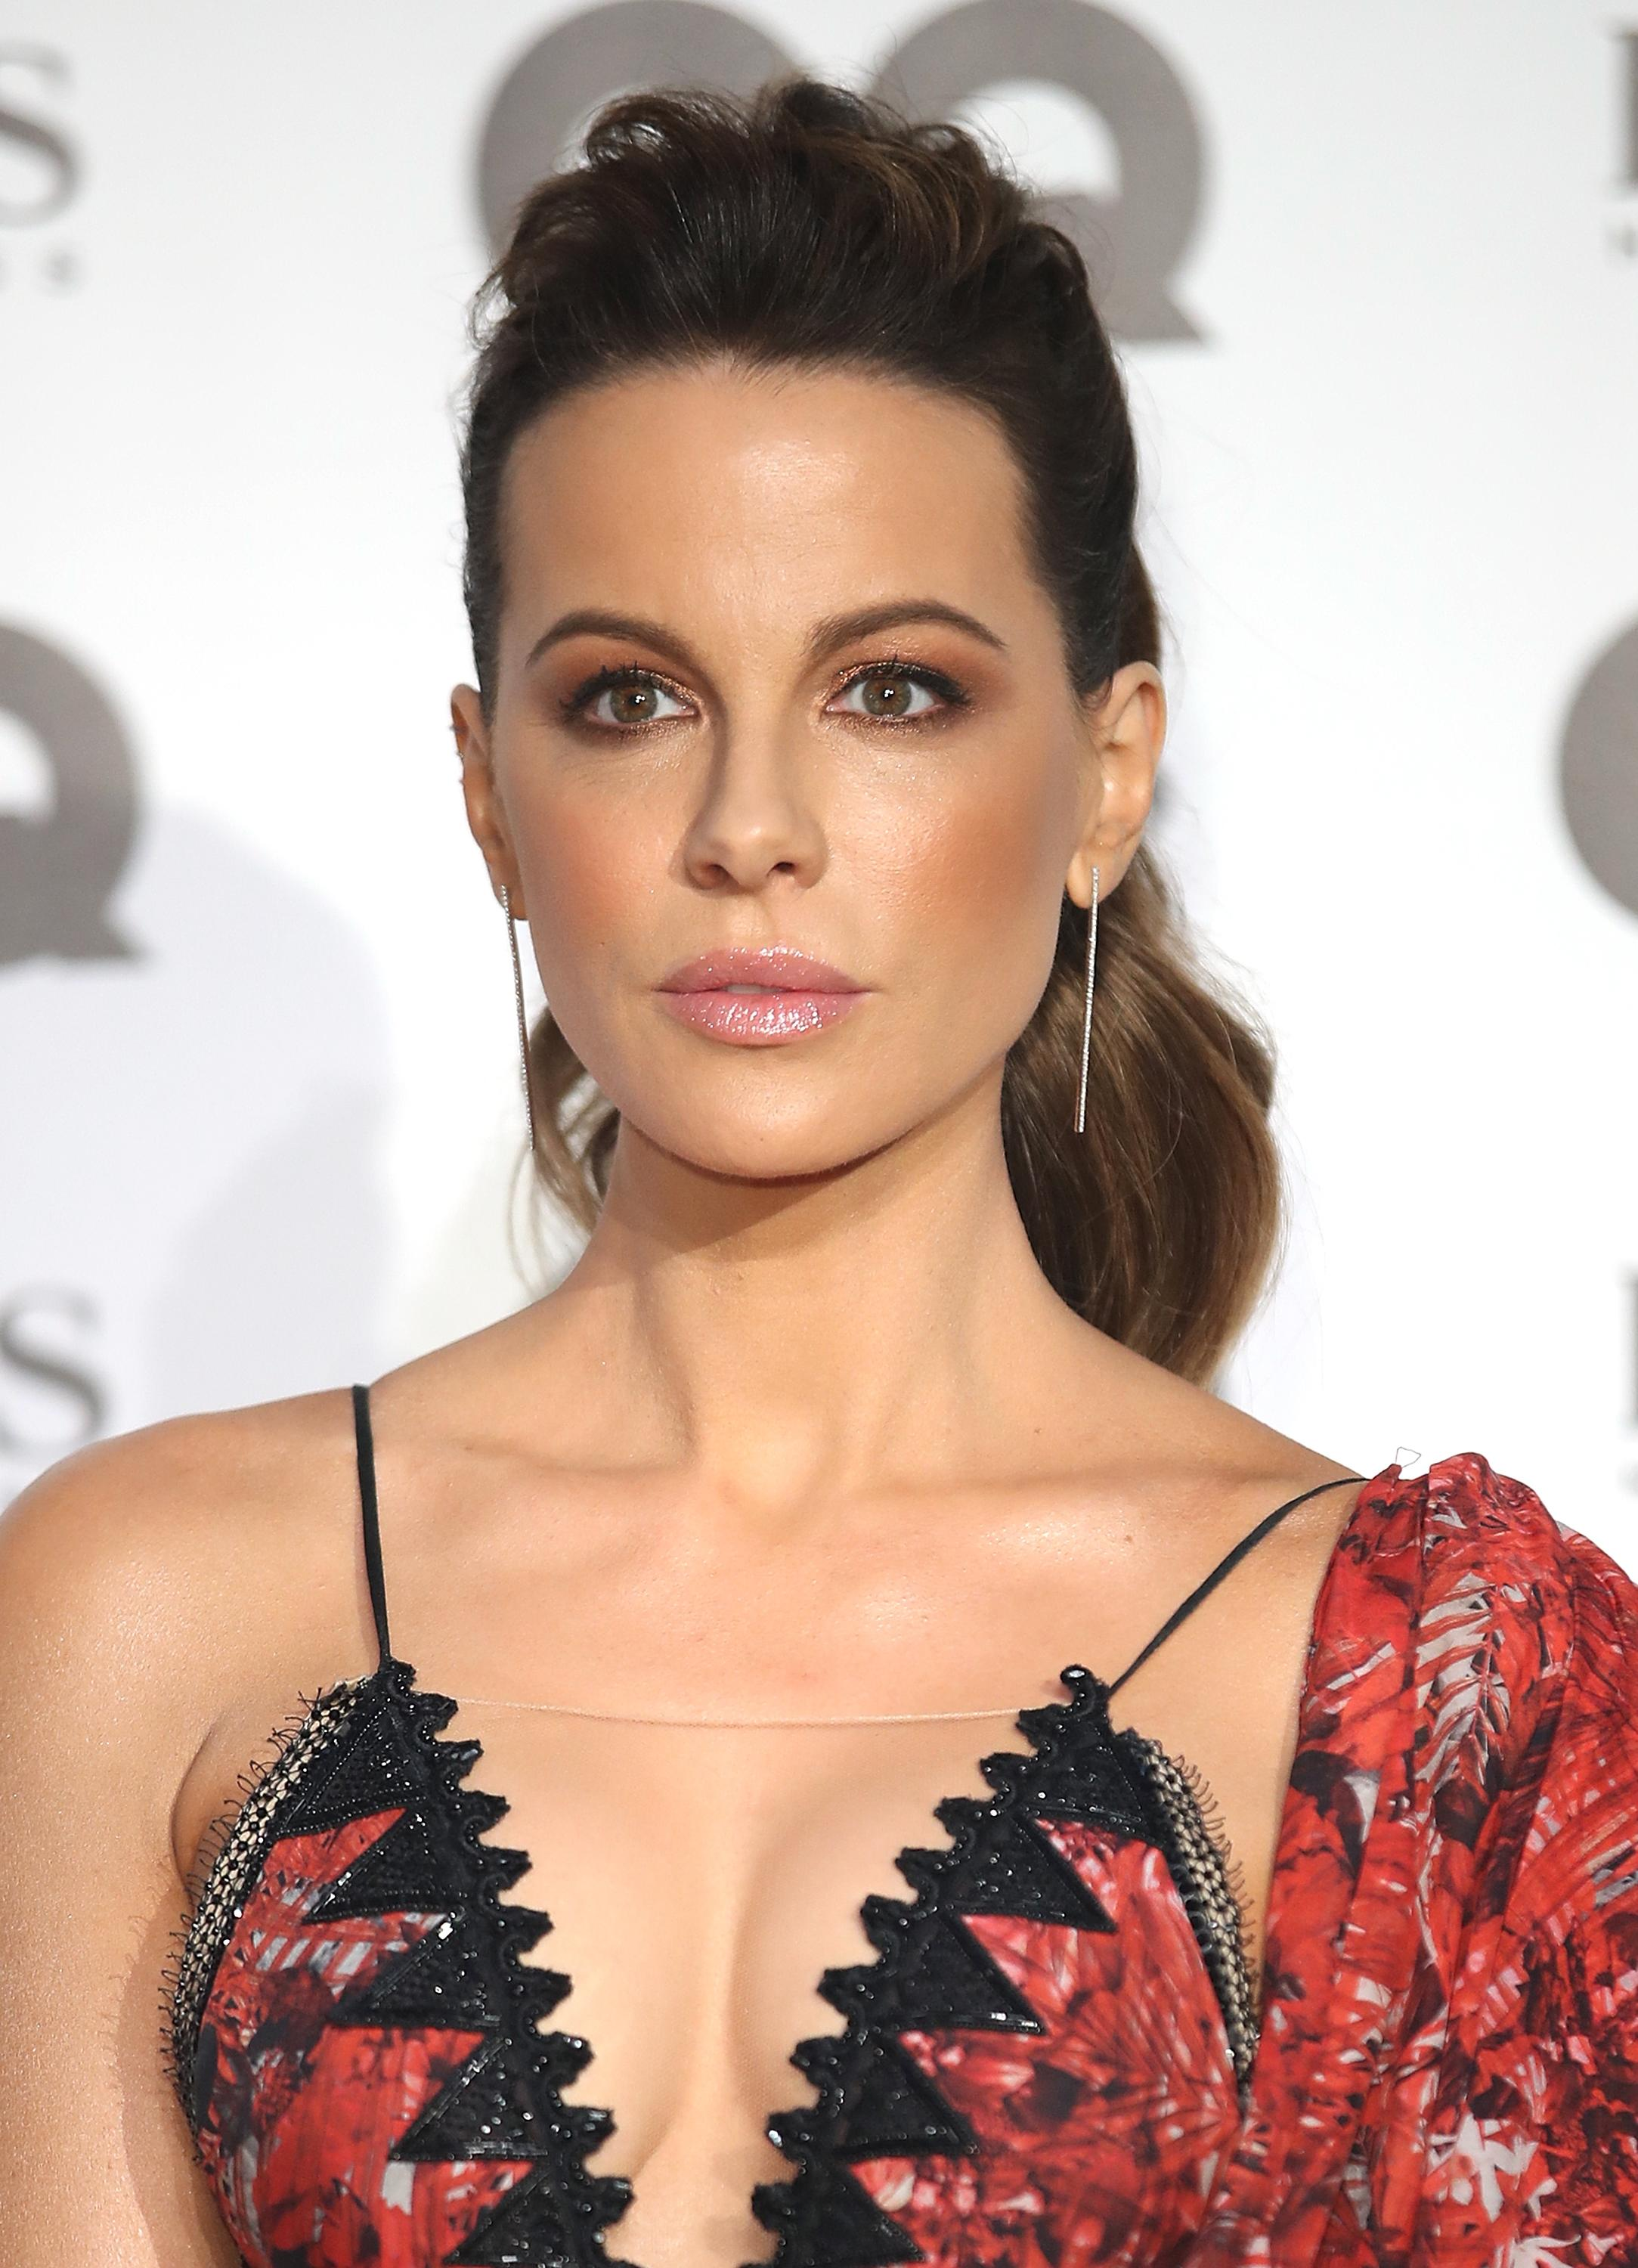 Photos Kate Beckinsale nudes (15 foto and video), Sexy, Sideboobs, Boobs, swimsuit 2020